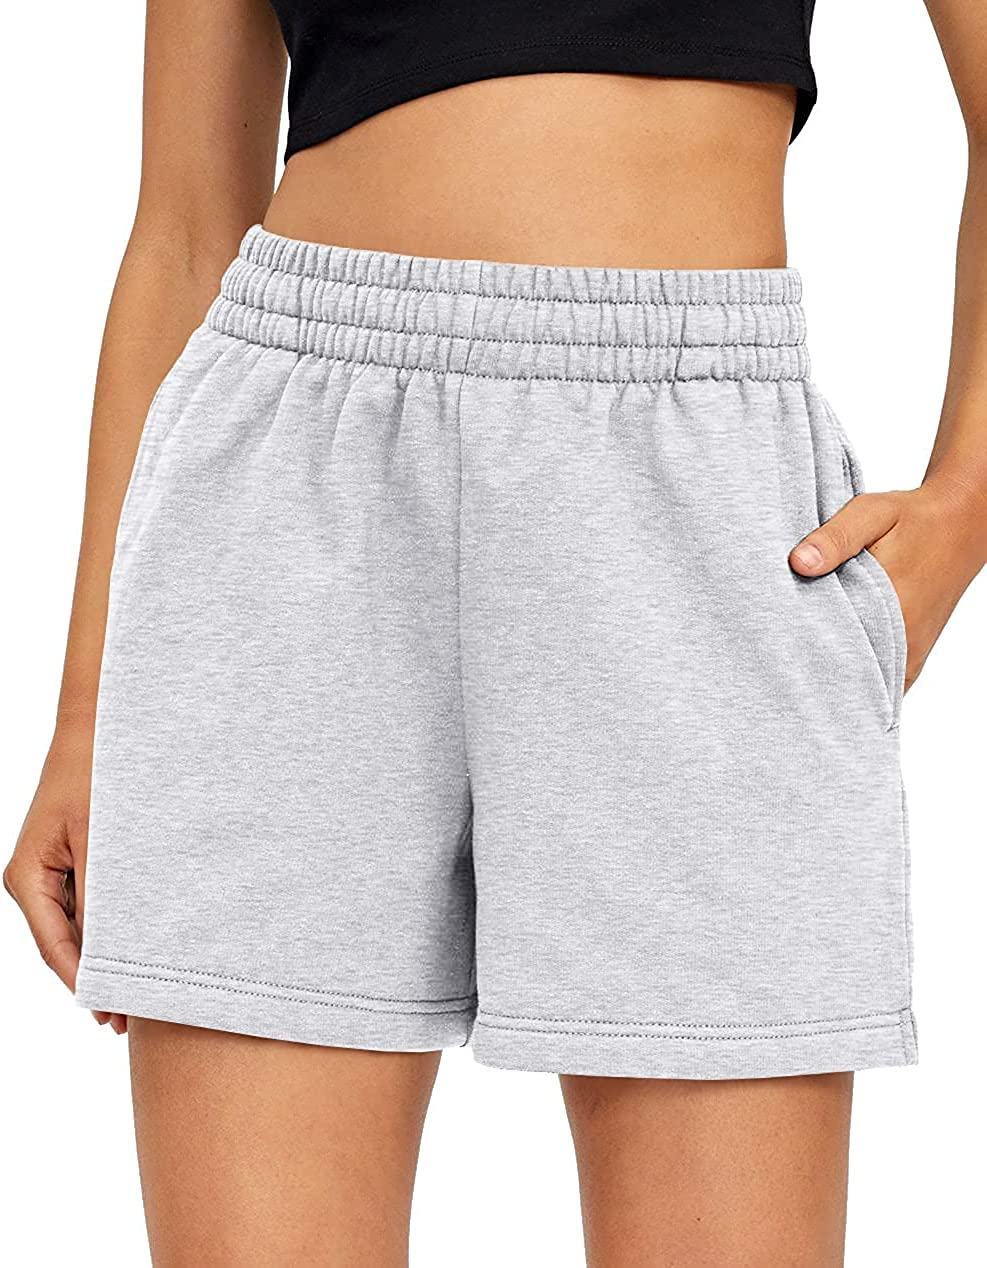 67% OFF of fixed price AUTOMET High material Womens Shorts Casual Summer Short Sweat Drawstring Comfy